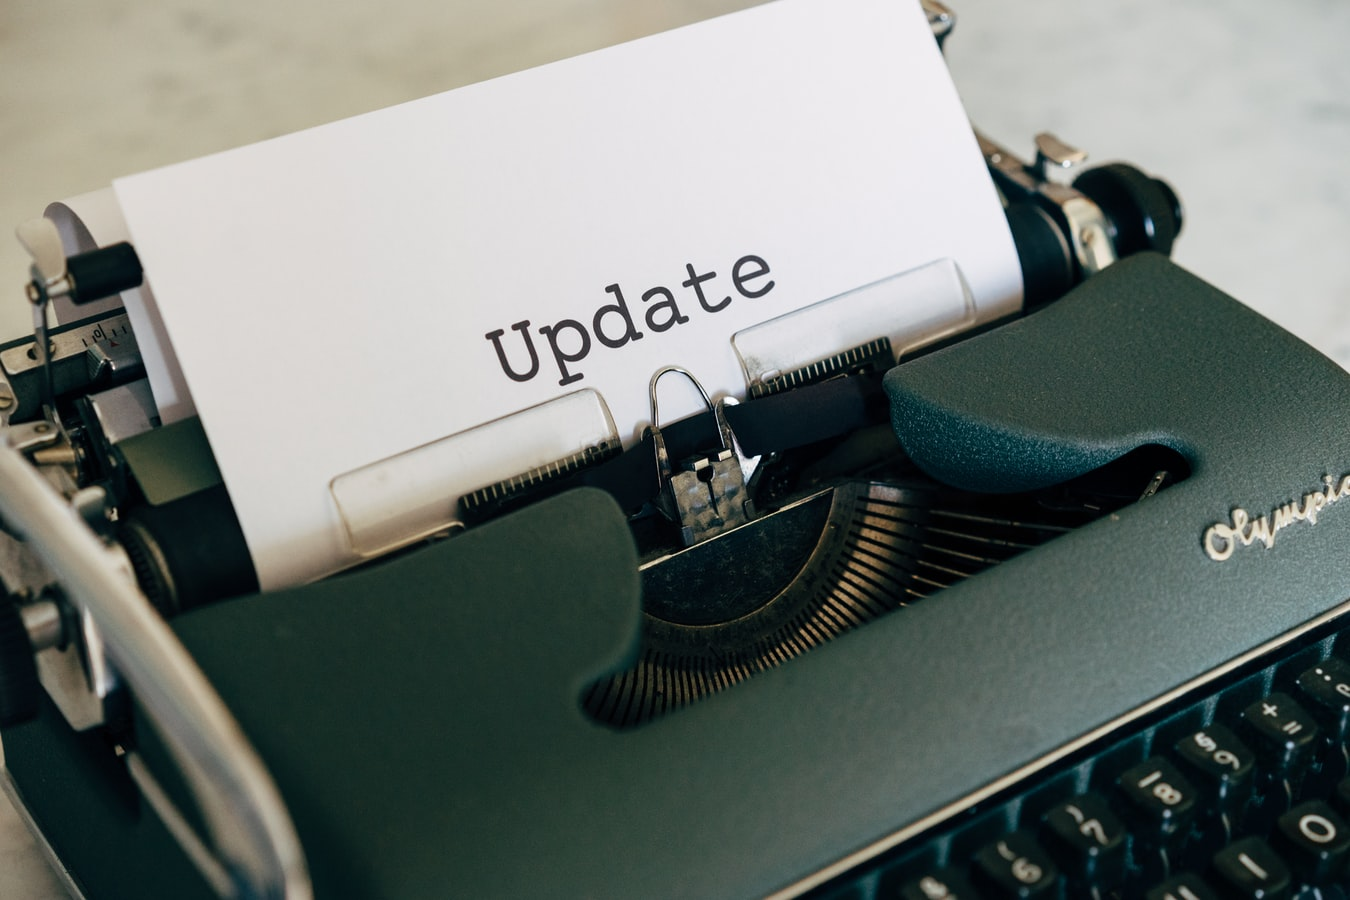 An Update on our Services Relating to Covid-19